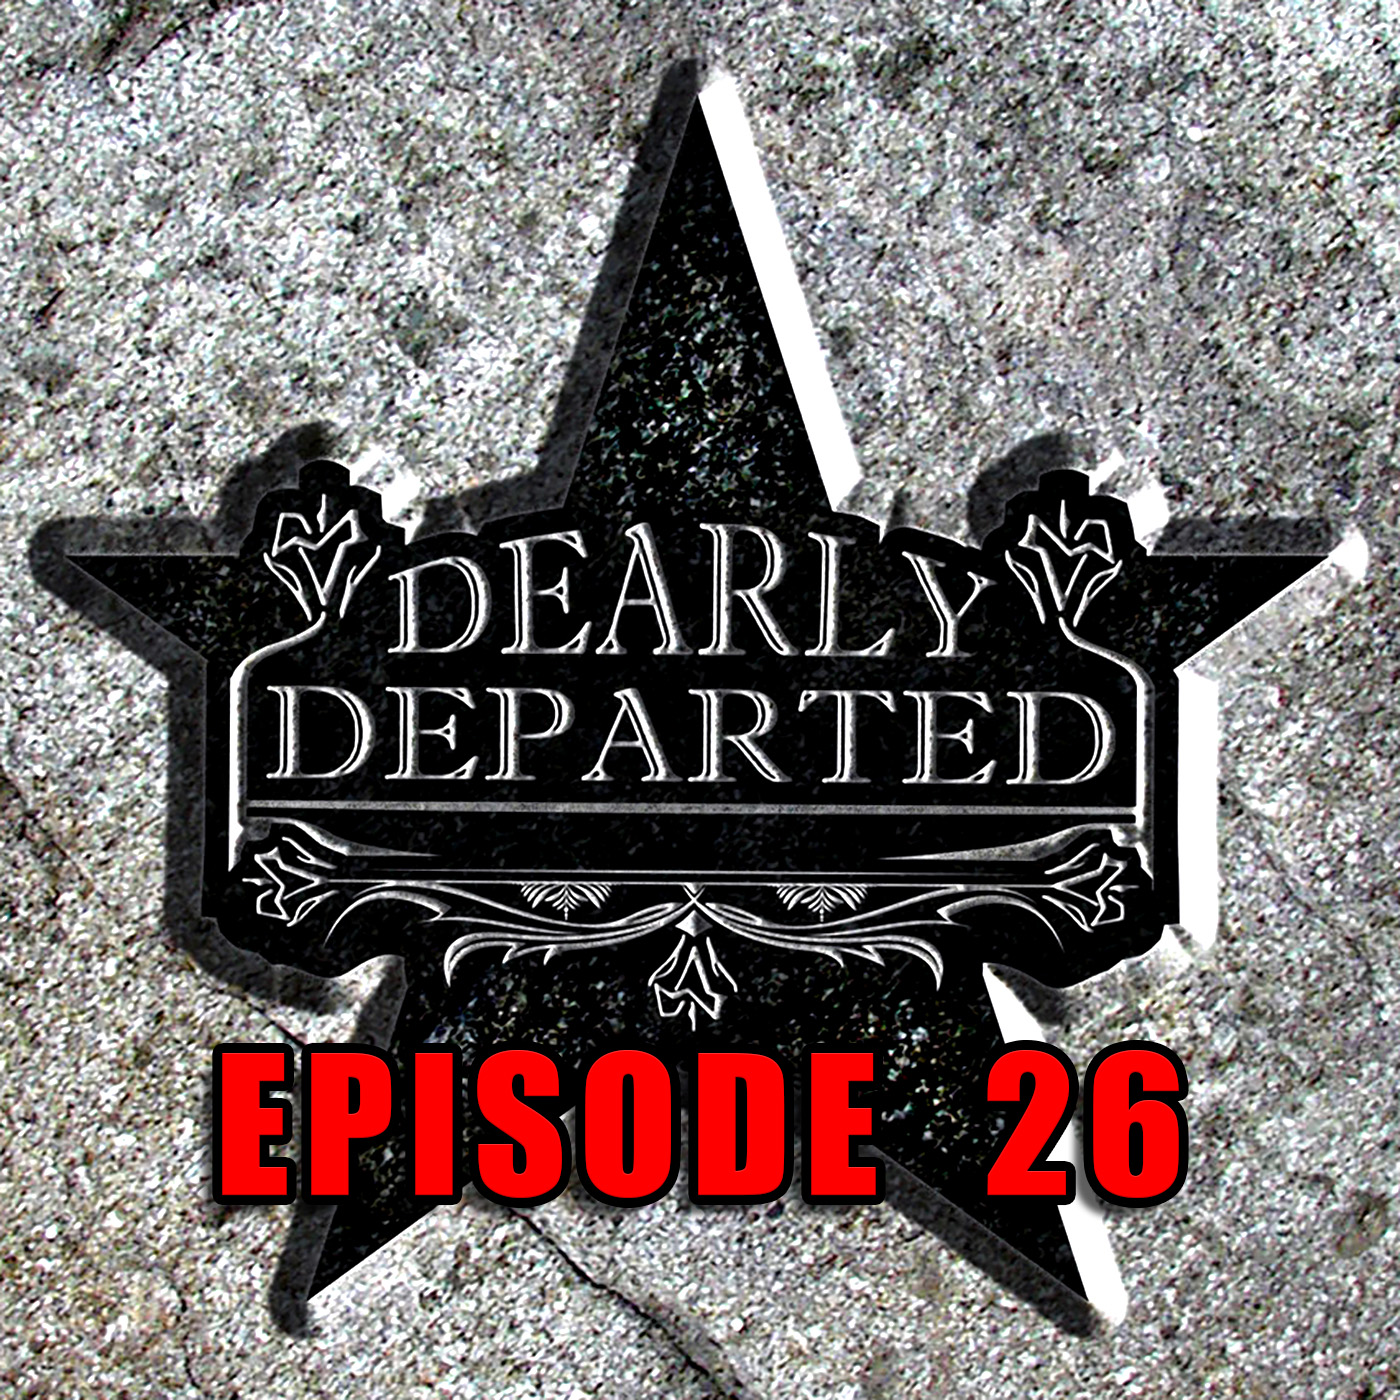 Episode 26 - I Love Lucy